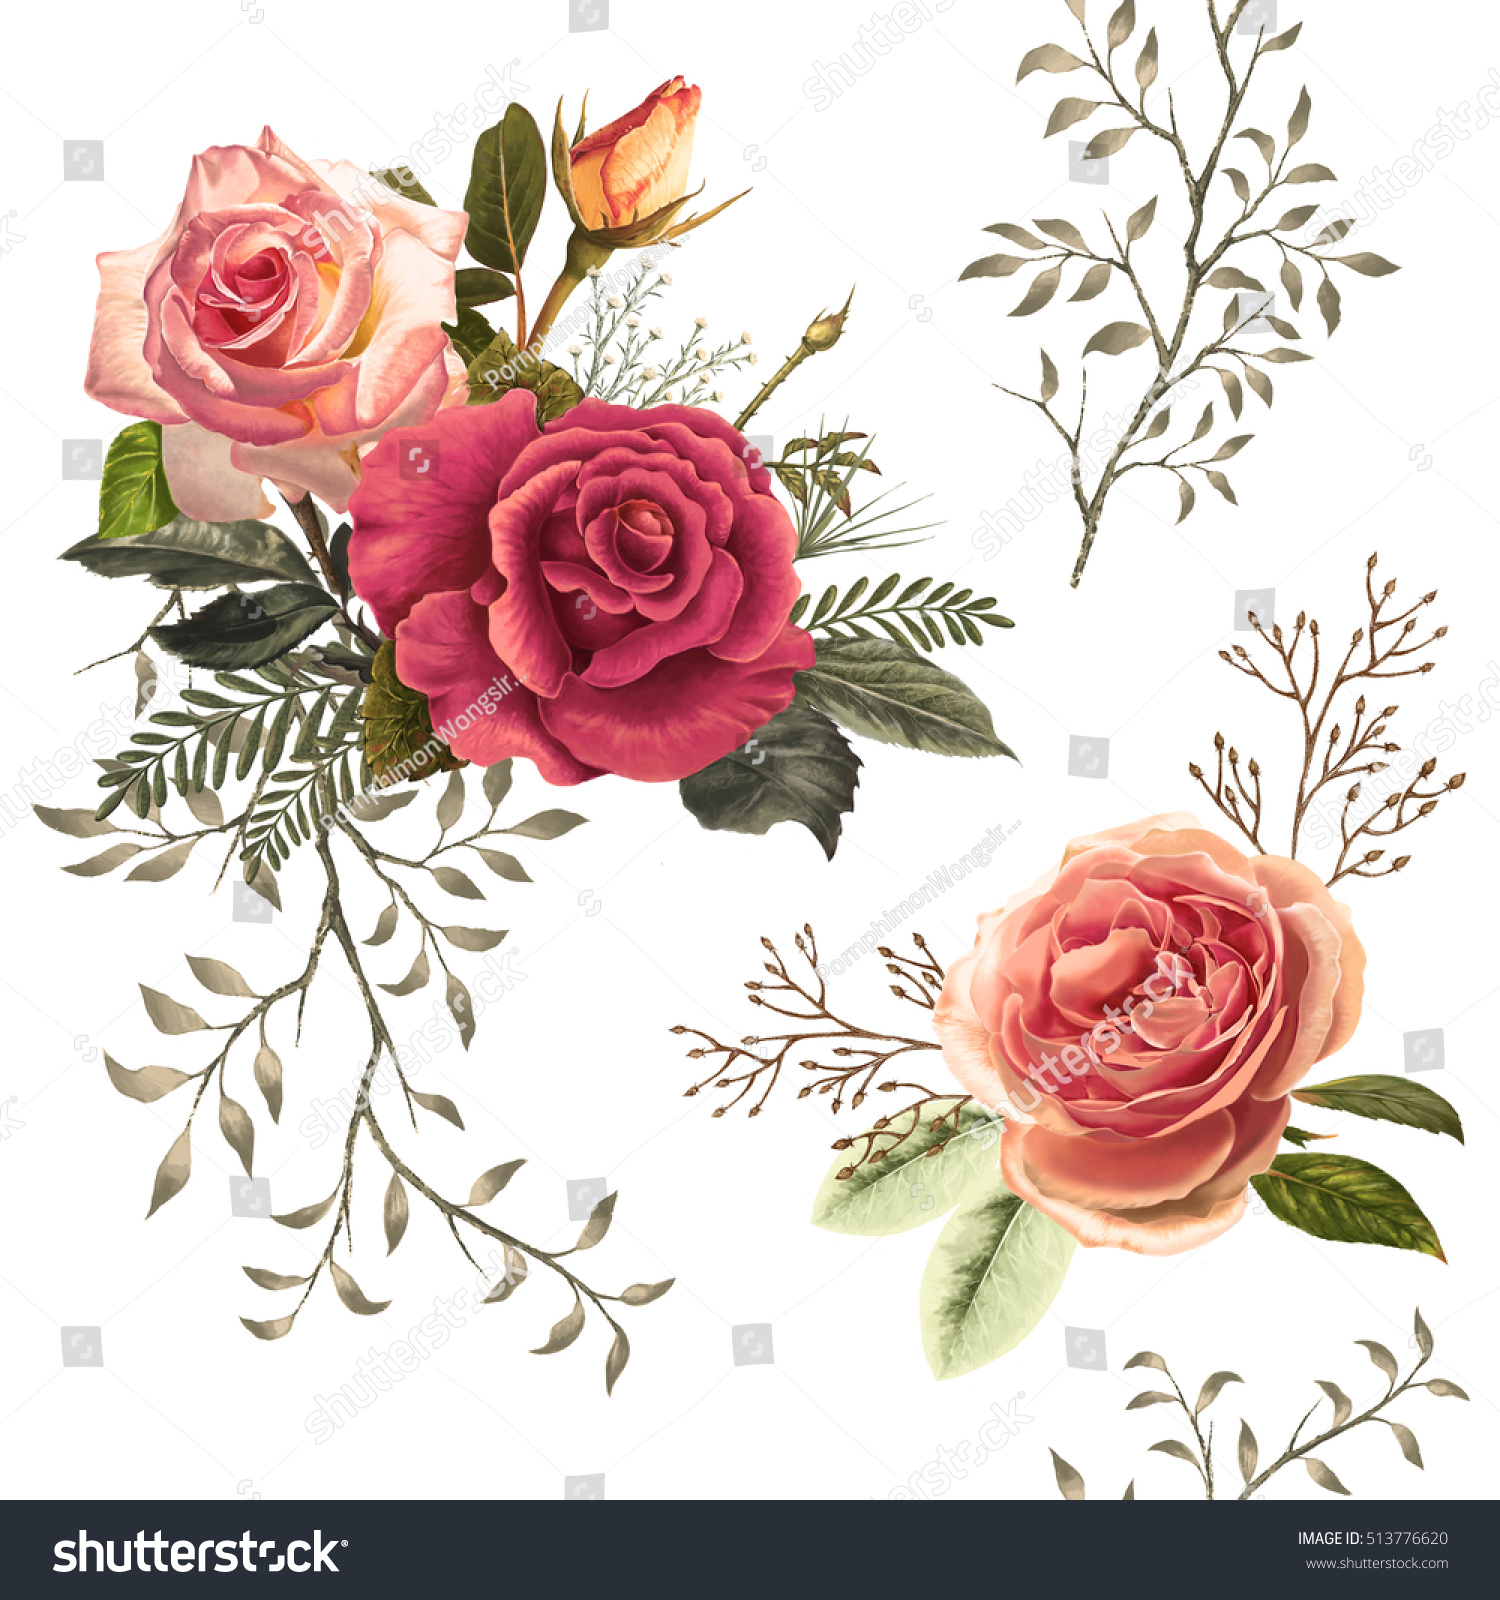 Illustration Beautiful Flower On White Background Stock Illustration